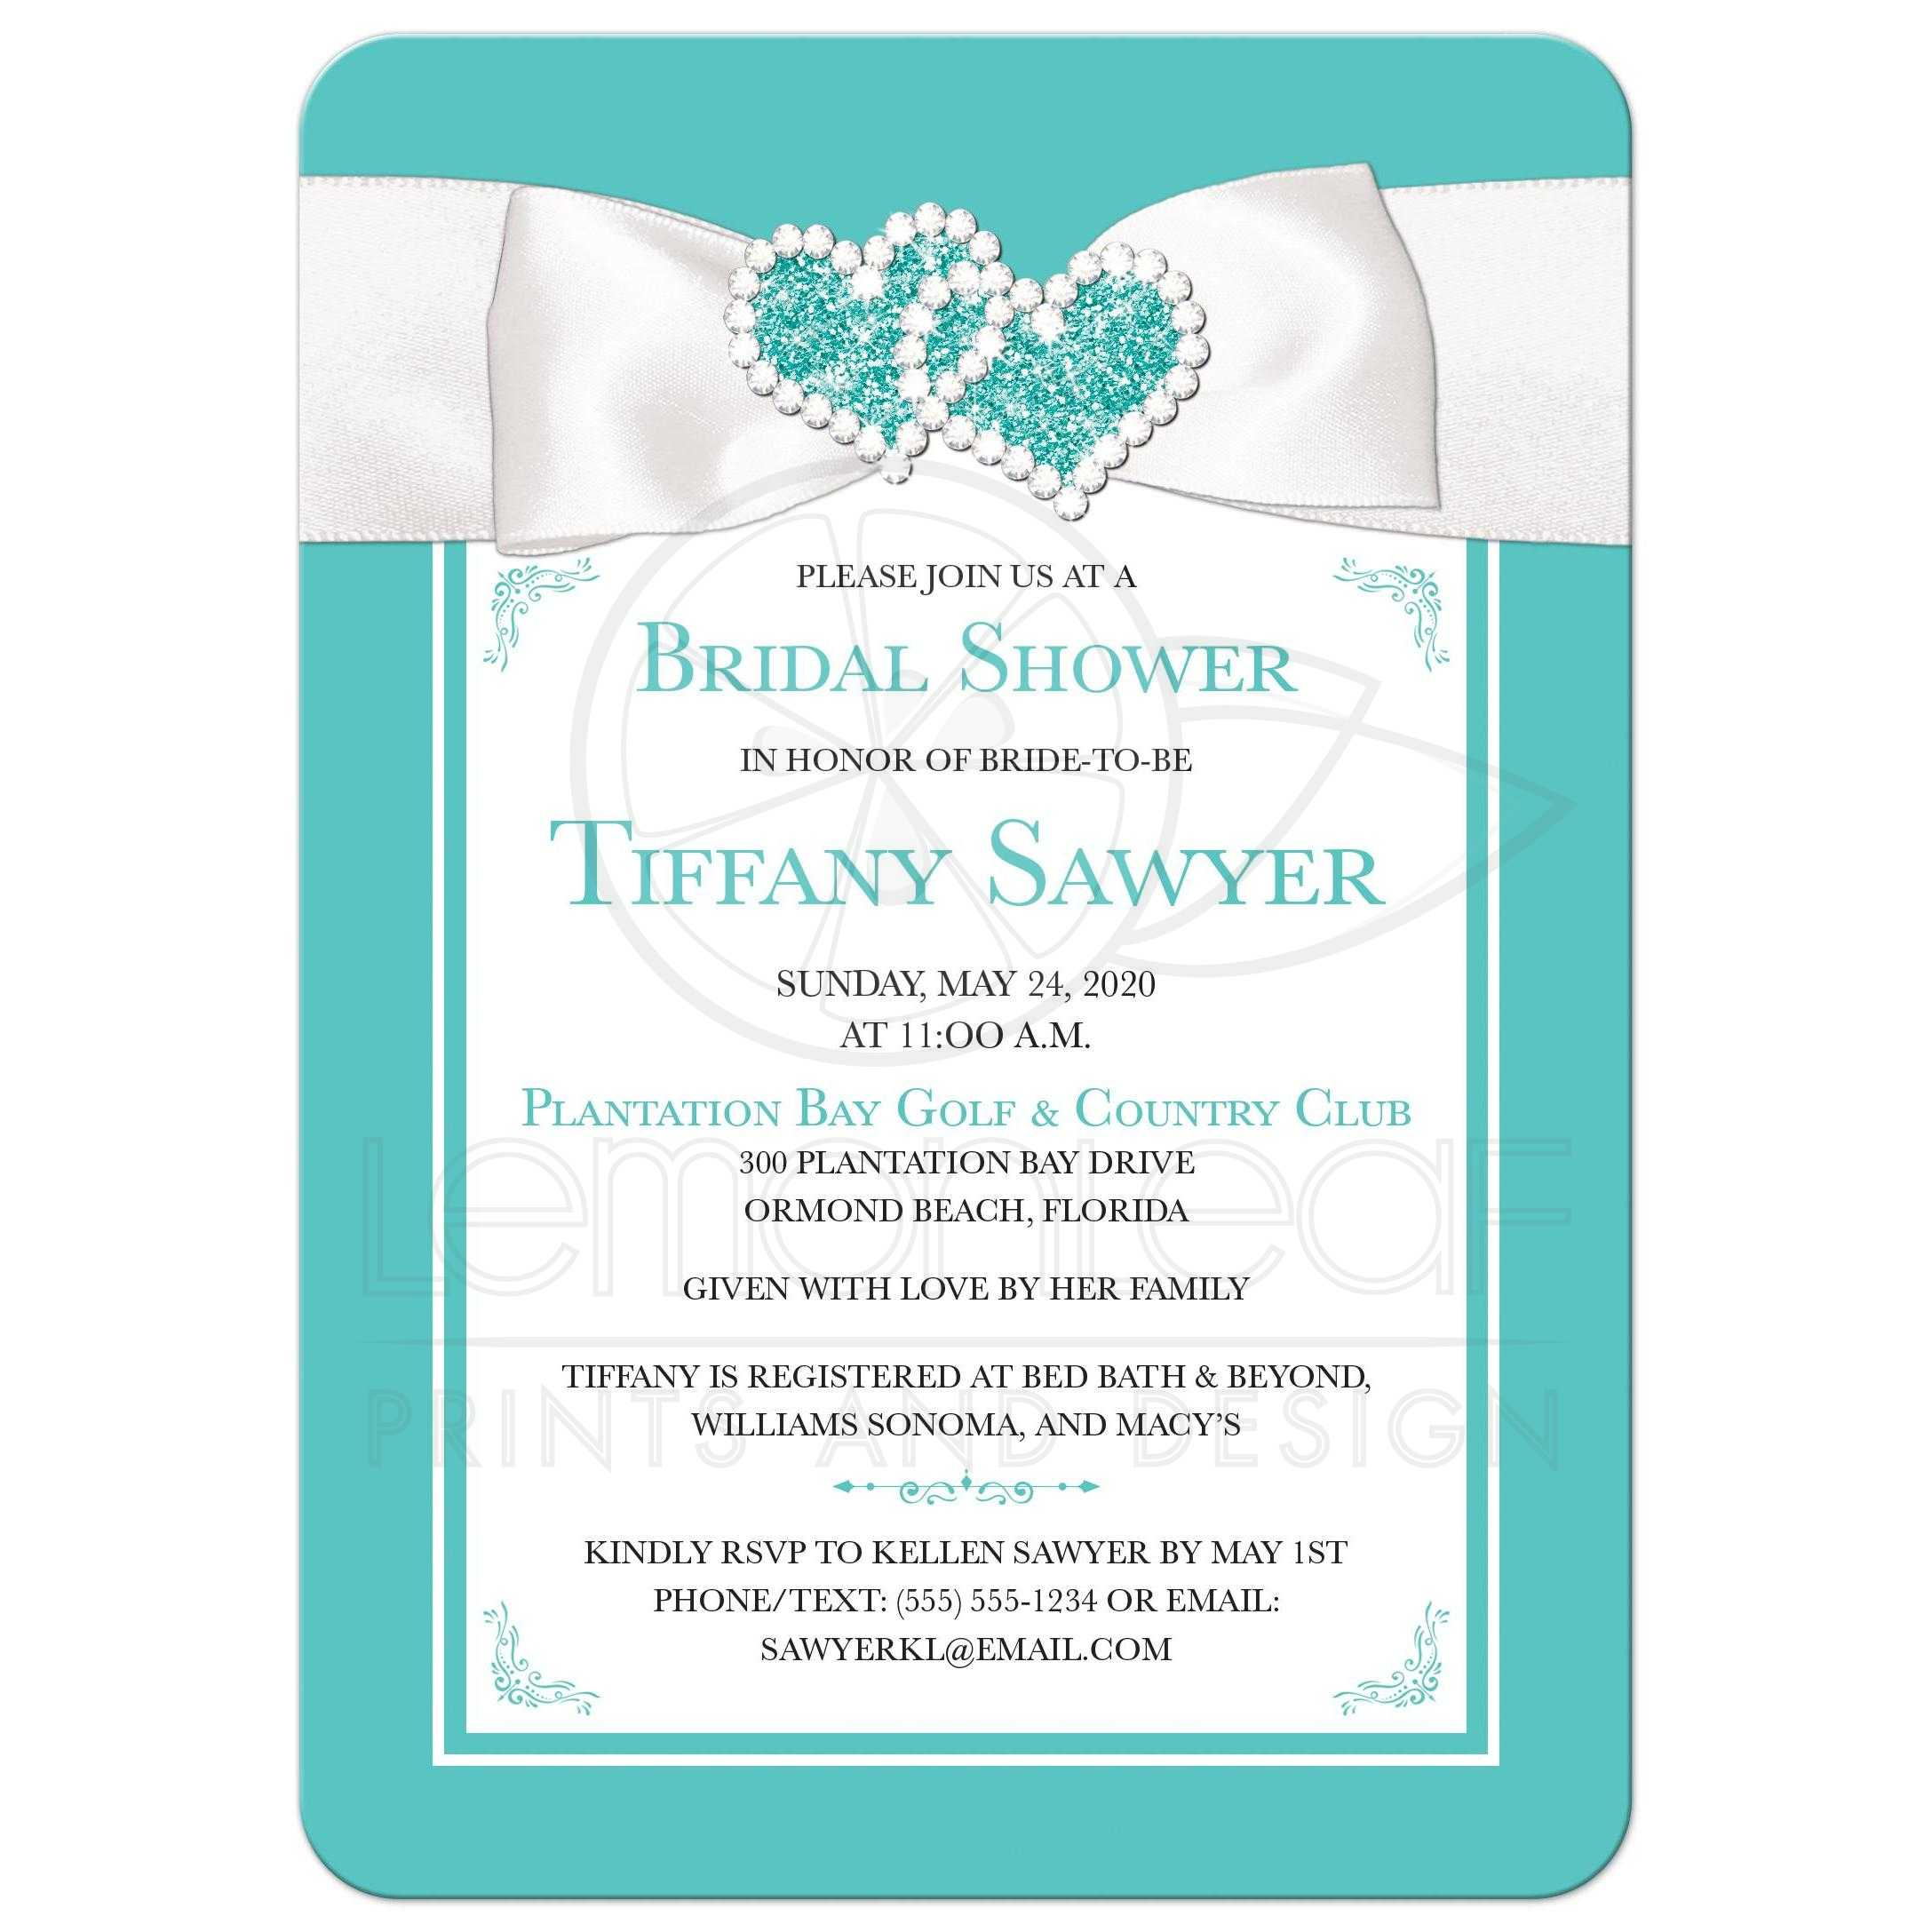 12 Corset Bridal Shower Invitation Teal Blue With white ribbon